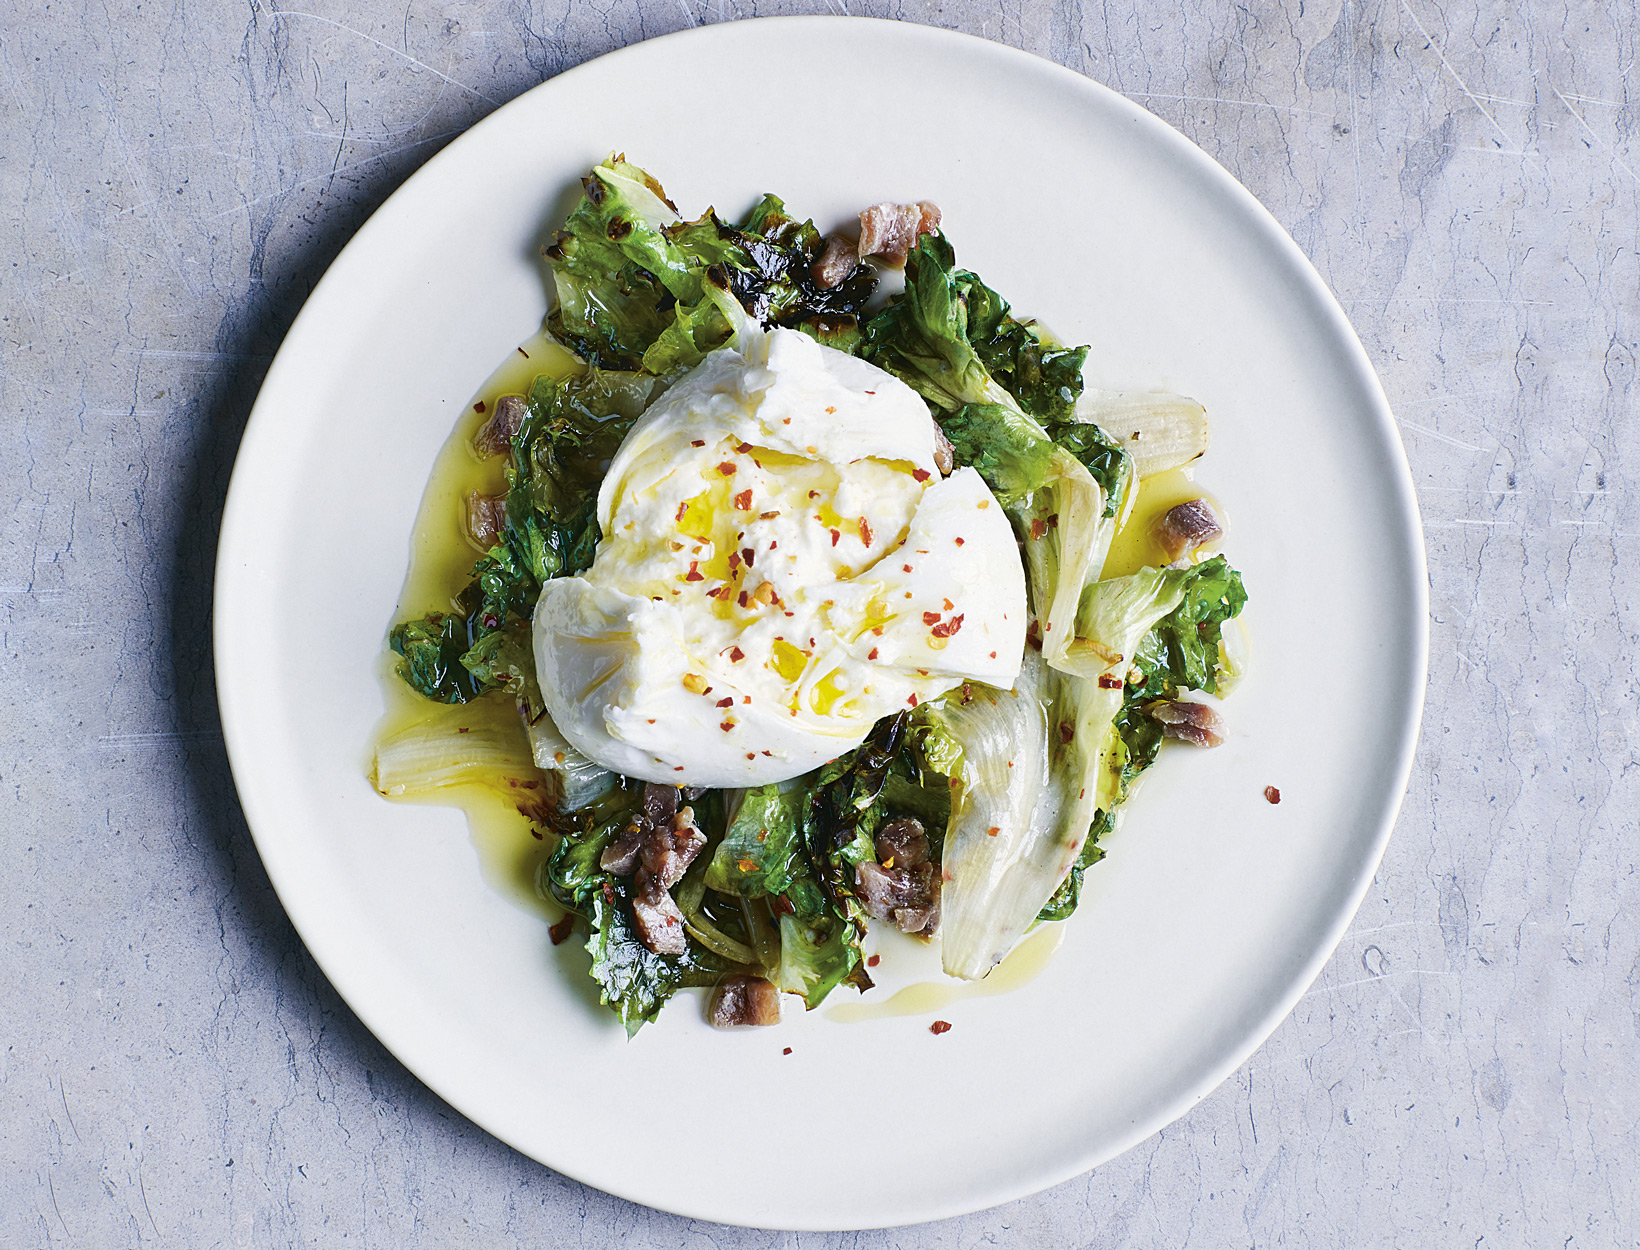 Burrata, Escarole, and Chili Flakes